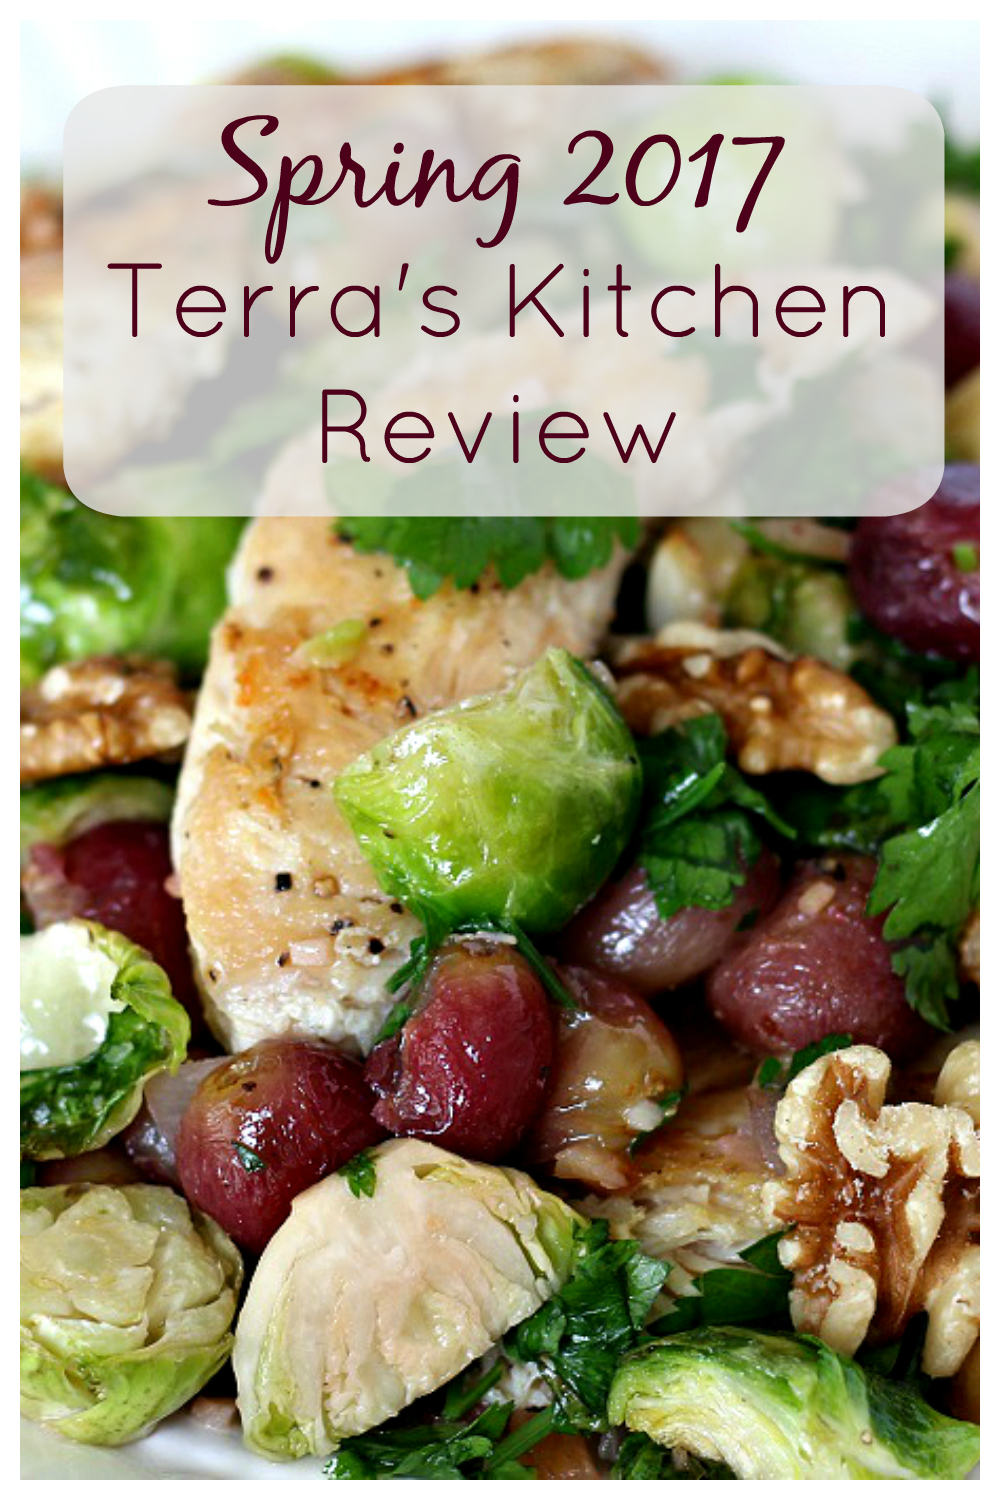 Our Terra's Kitchen Review gives you all the basic information about this meal kit subscription, as well as a review of 4 meals!